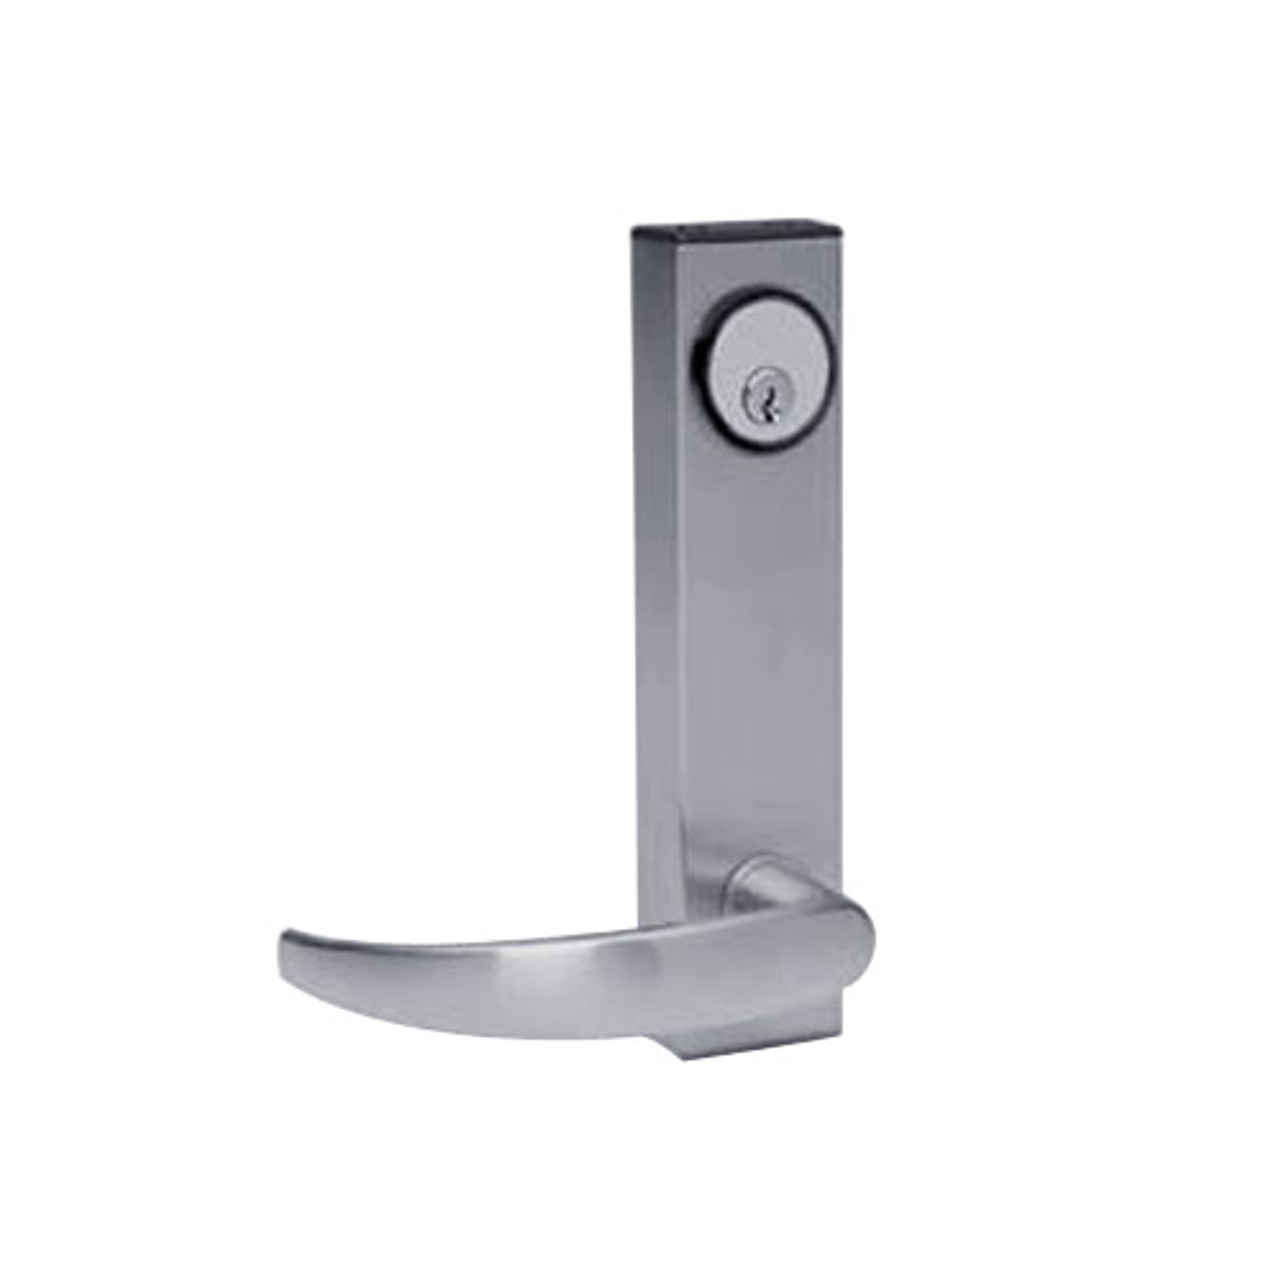 3080E-01-0-96-55 US32D Adams Rite Electrified Entry Trim with Curve Lever in Satin Stainless Finish